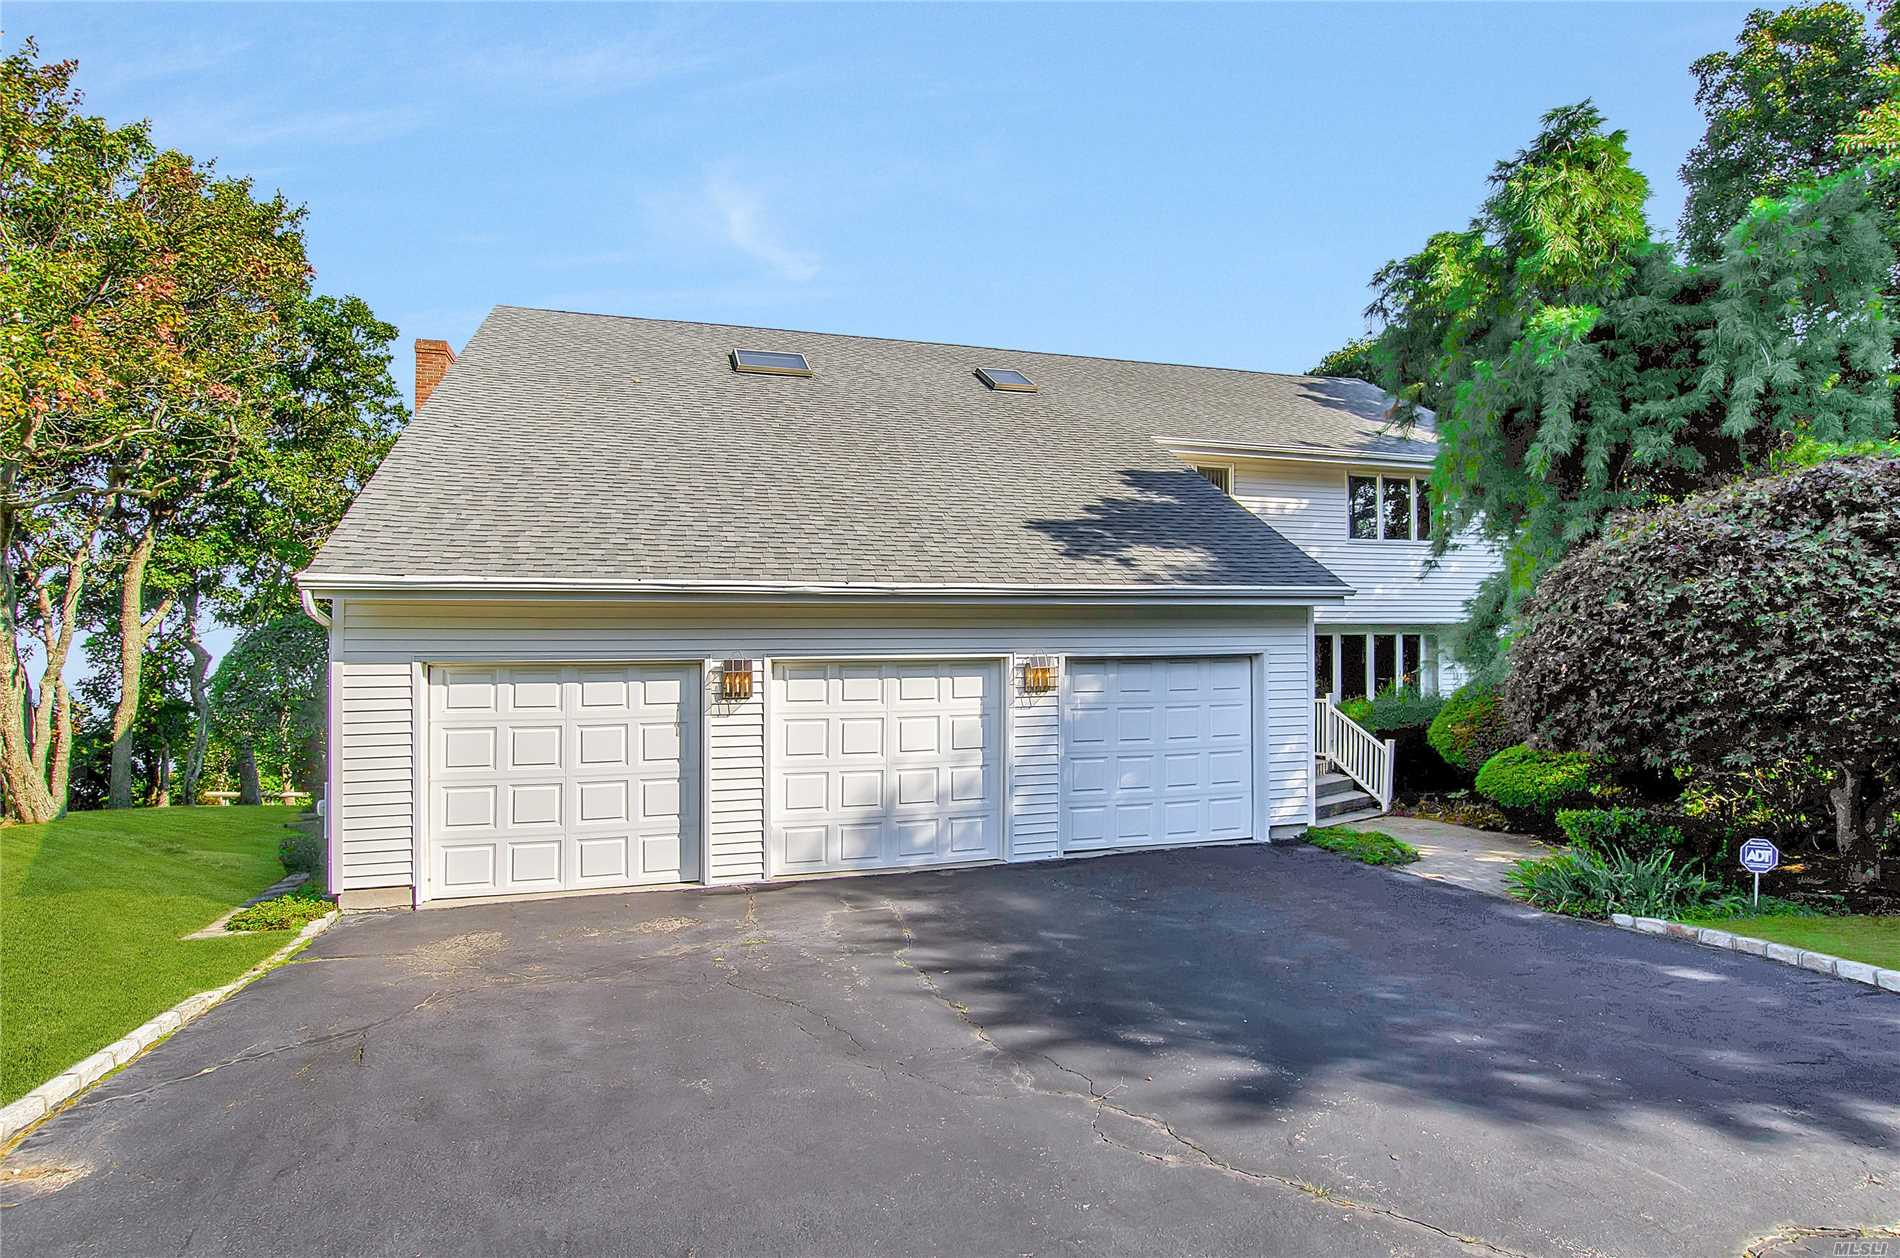 14 Bluffview Ct - Miller Place, New York